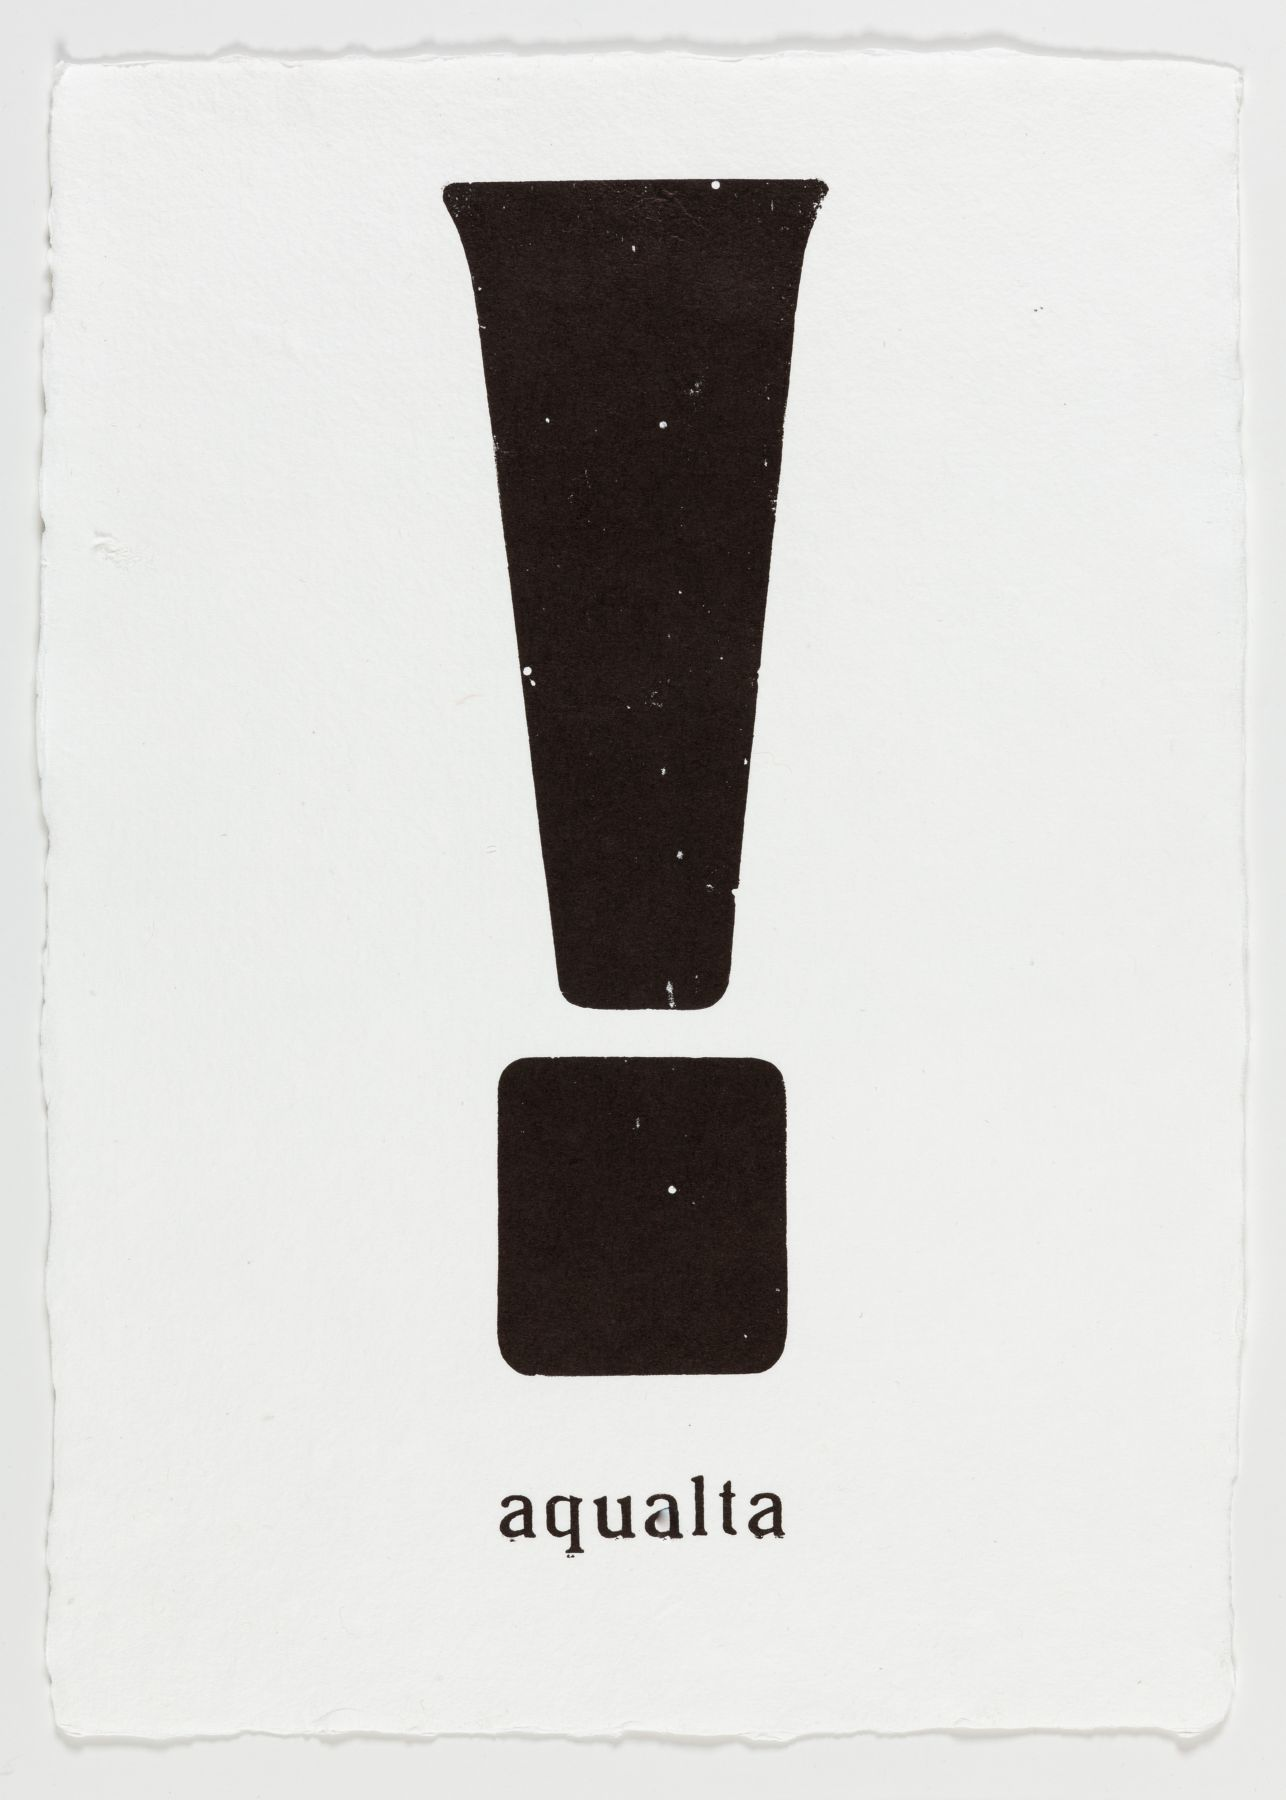 LOST AND FOUND IN VENICE: aqualta